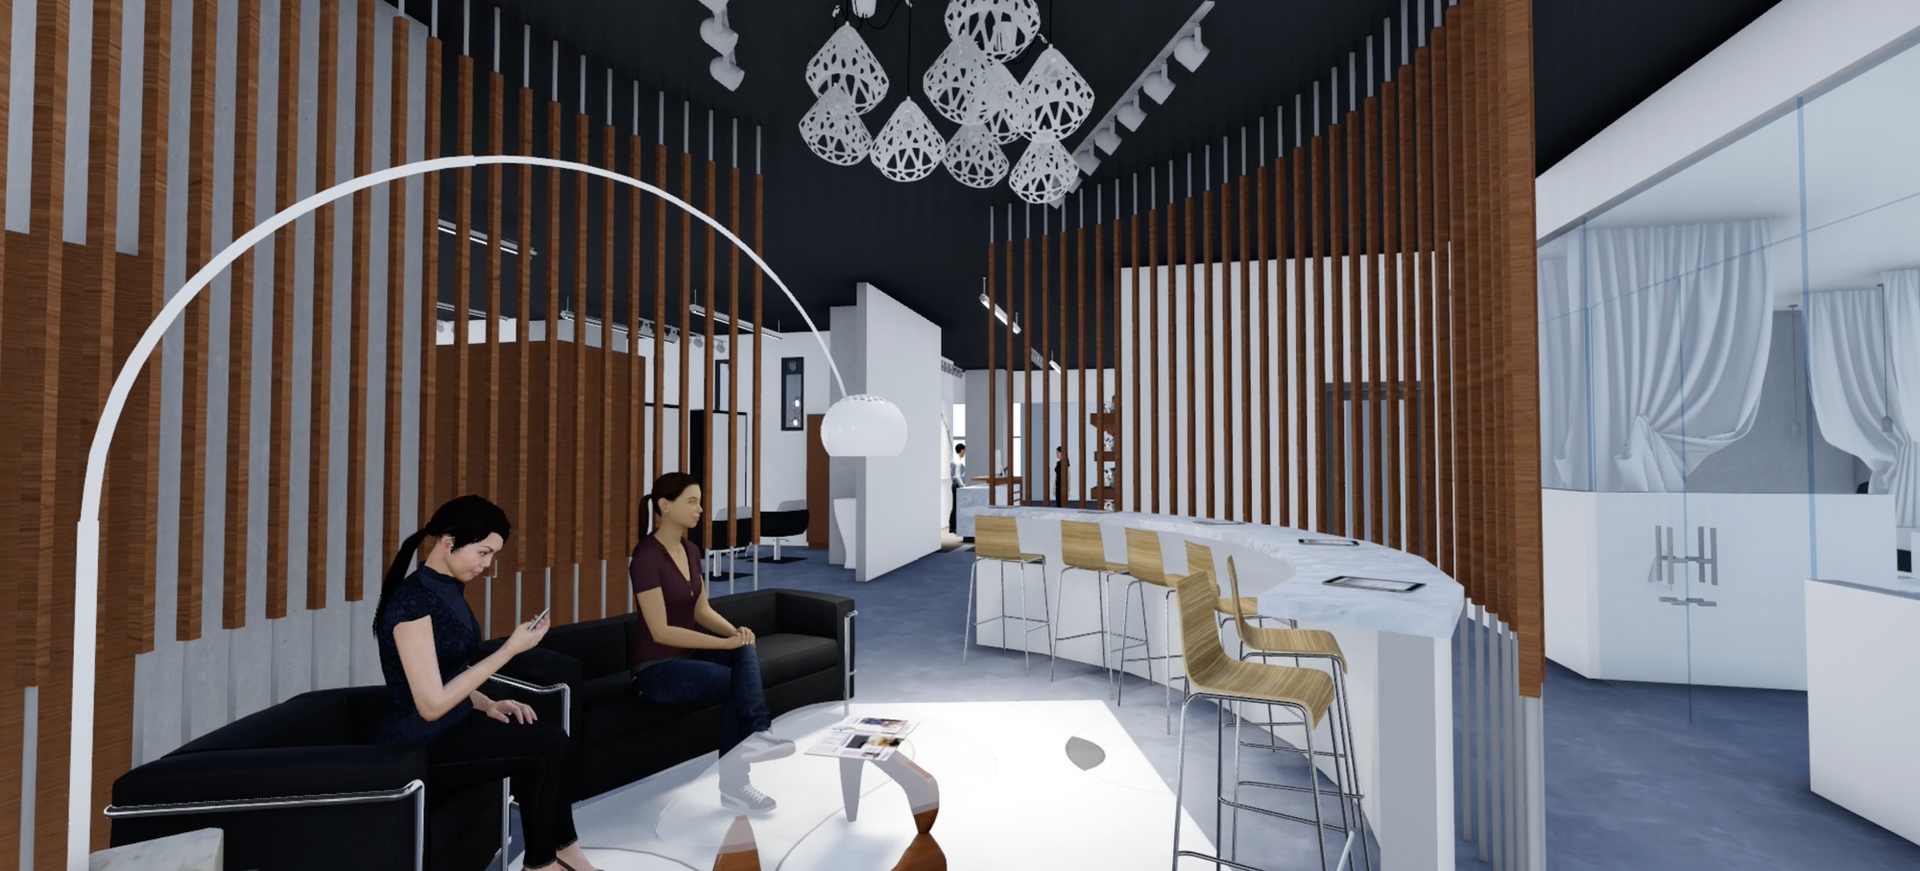 Hair Salon & Dining 3D Modeling